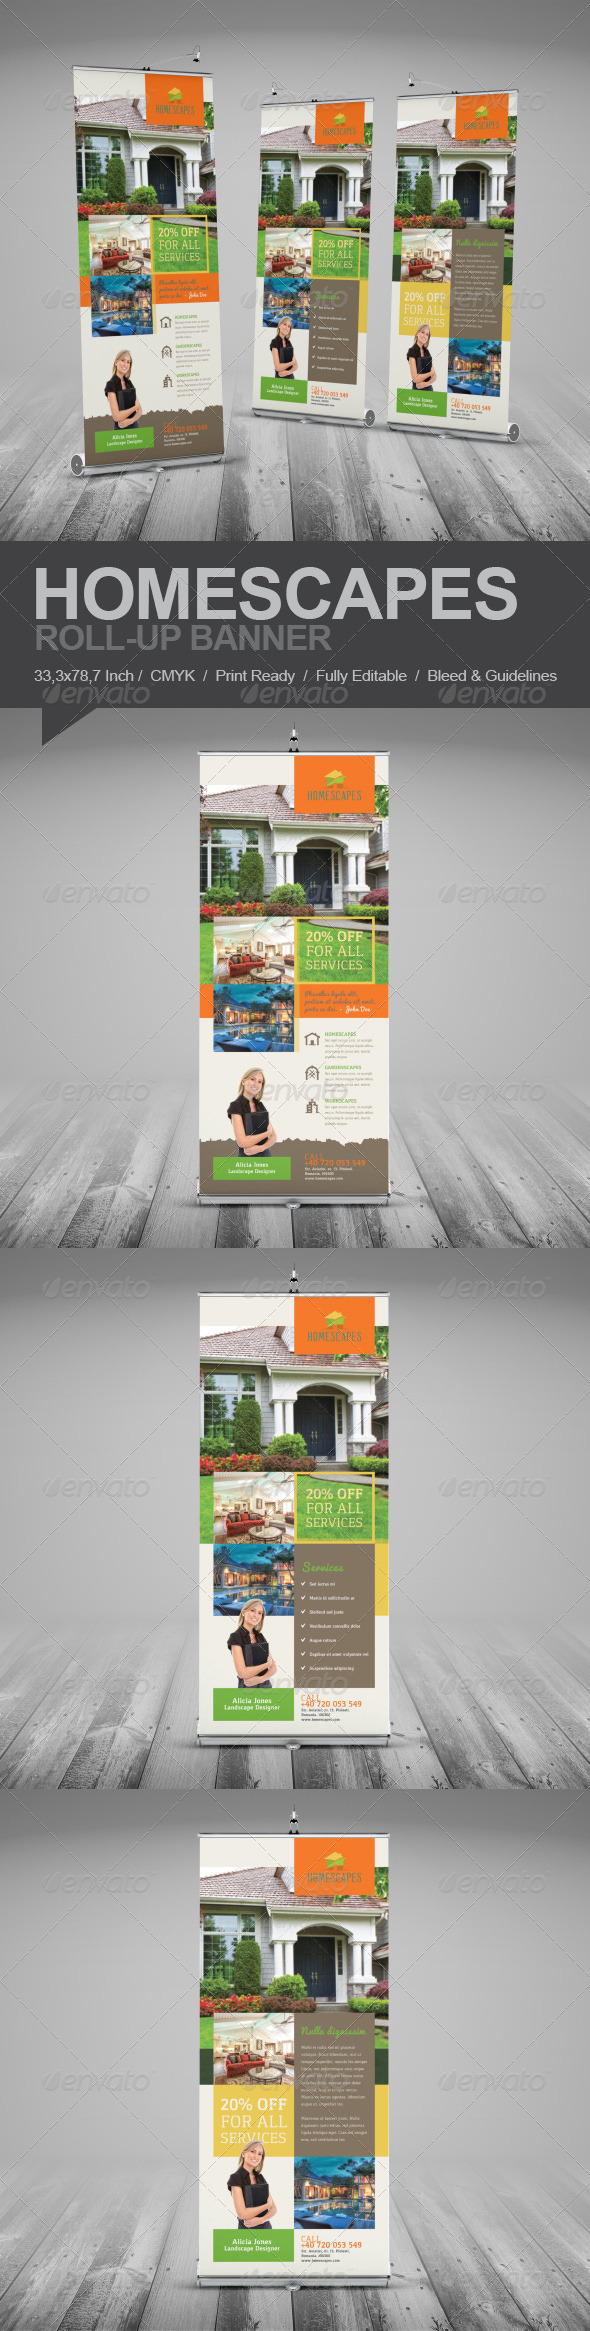 GraphicRiver Real Estate And Homescapes Roll-Up Banner 7929569